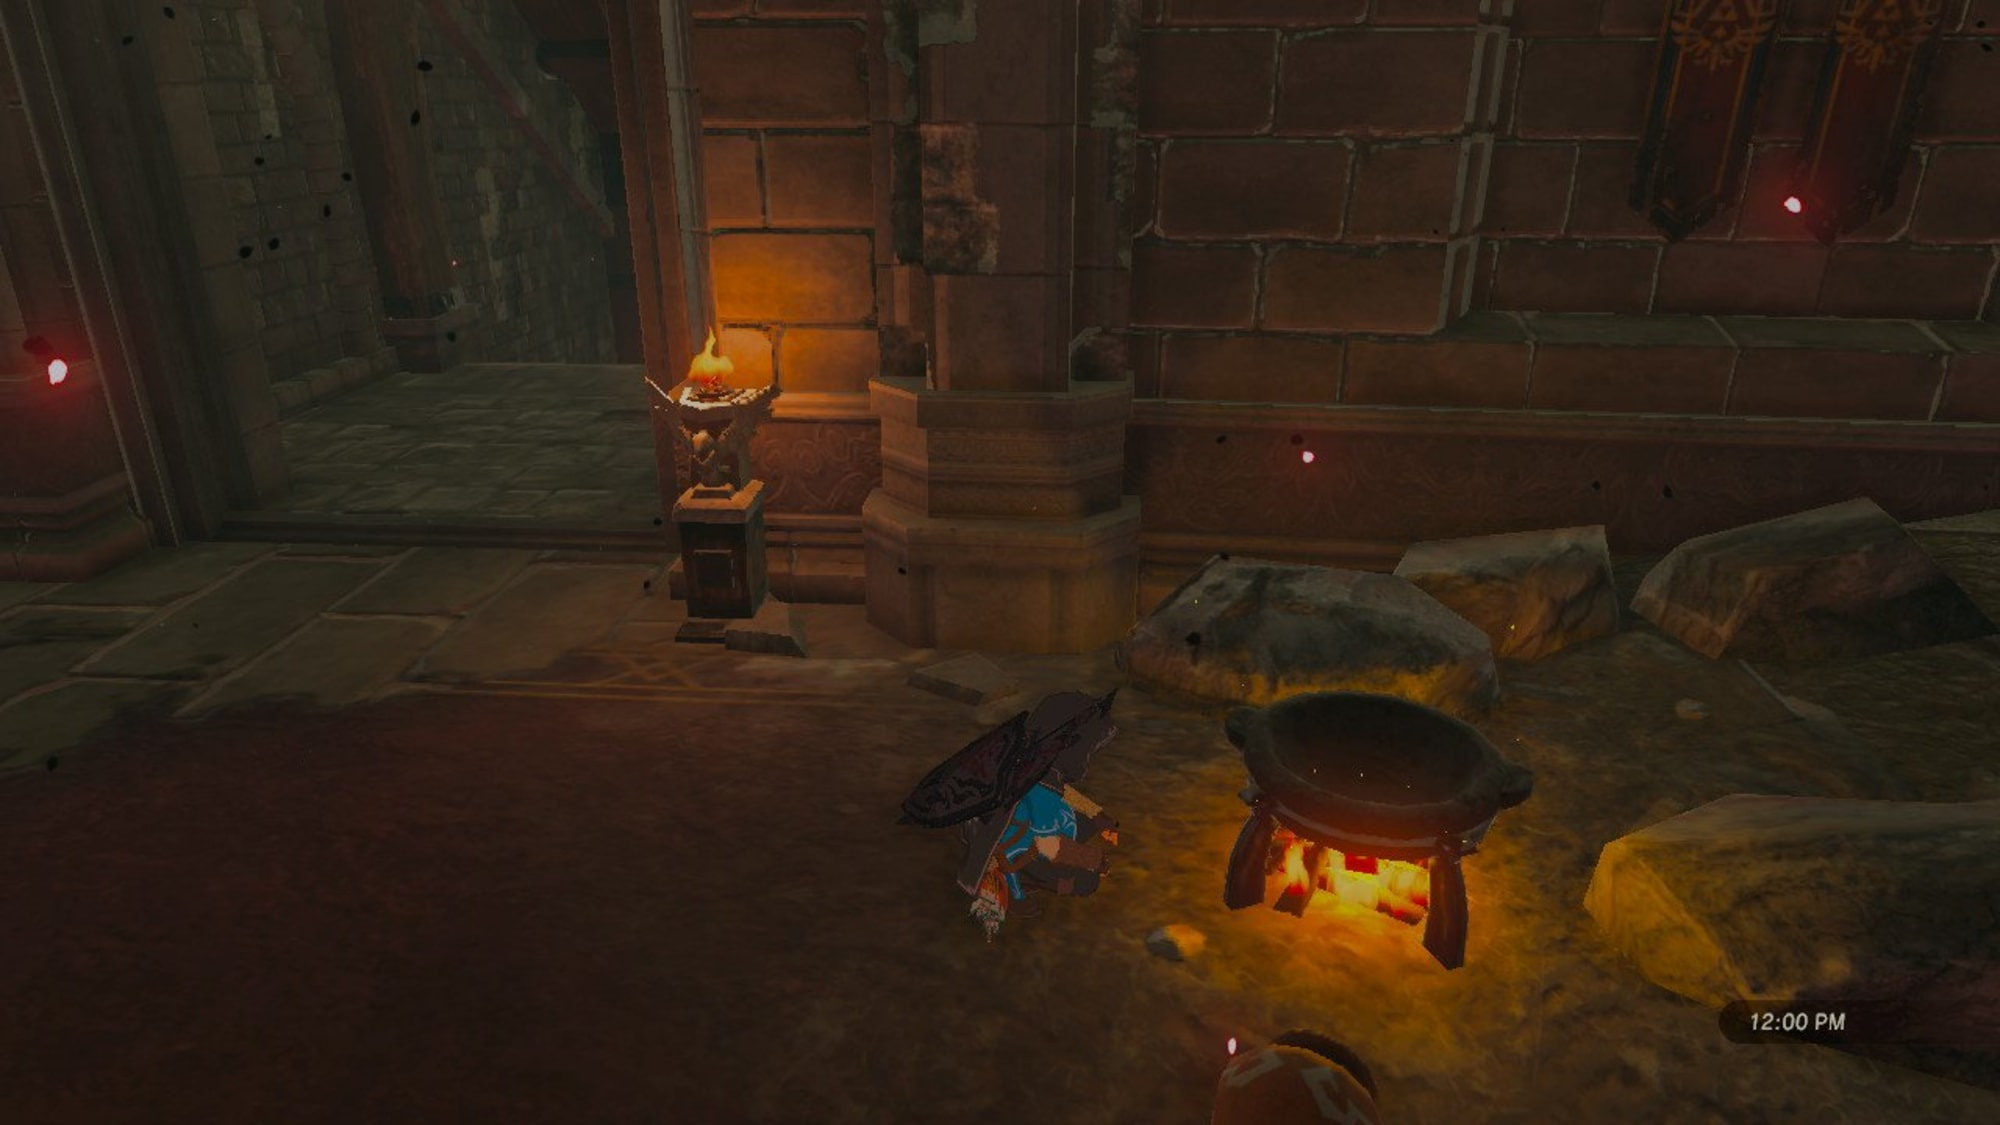 The Legend Of Zelda Breath Of The Wild Getting Through Hyrule Castle